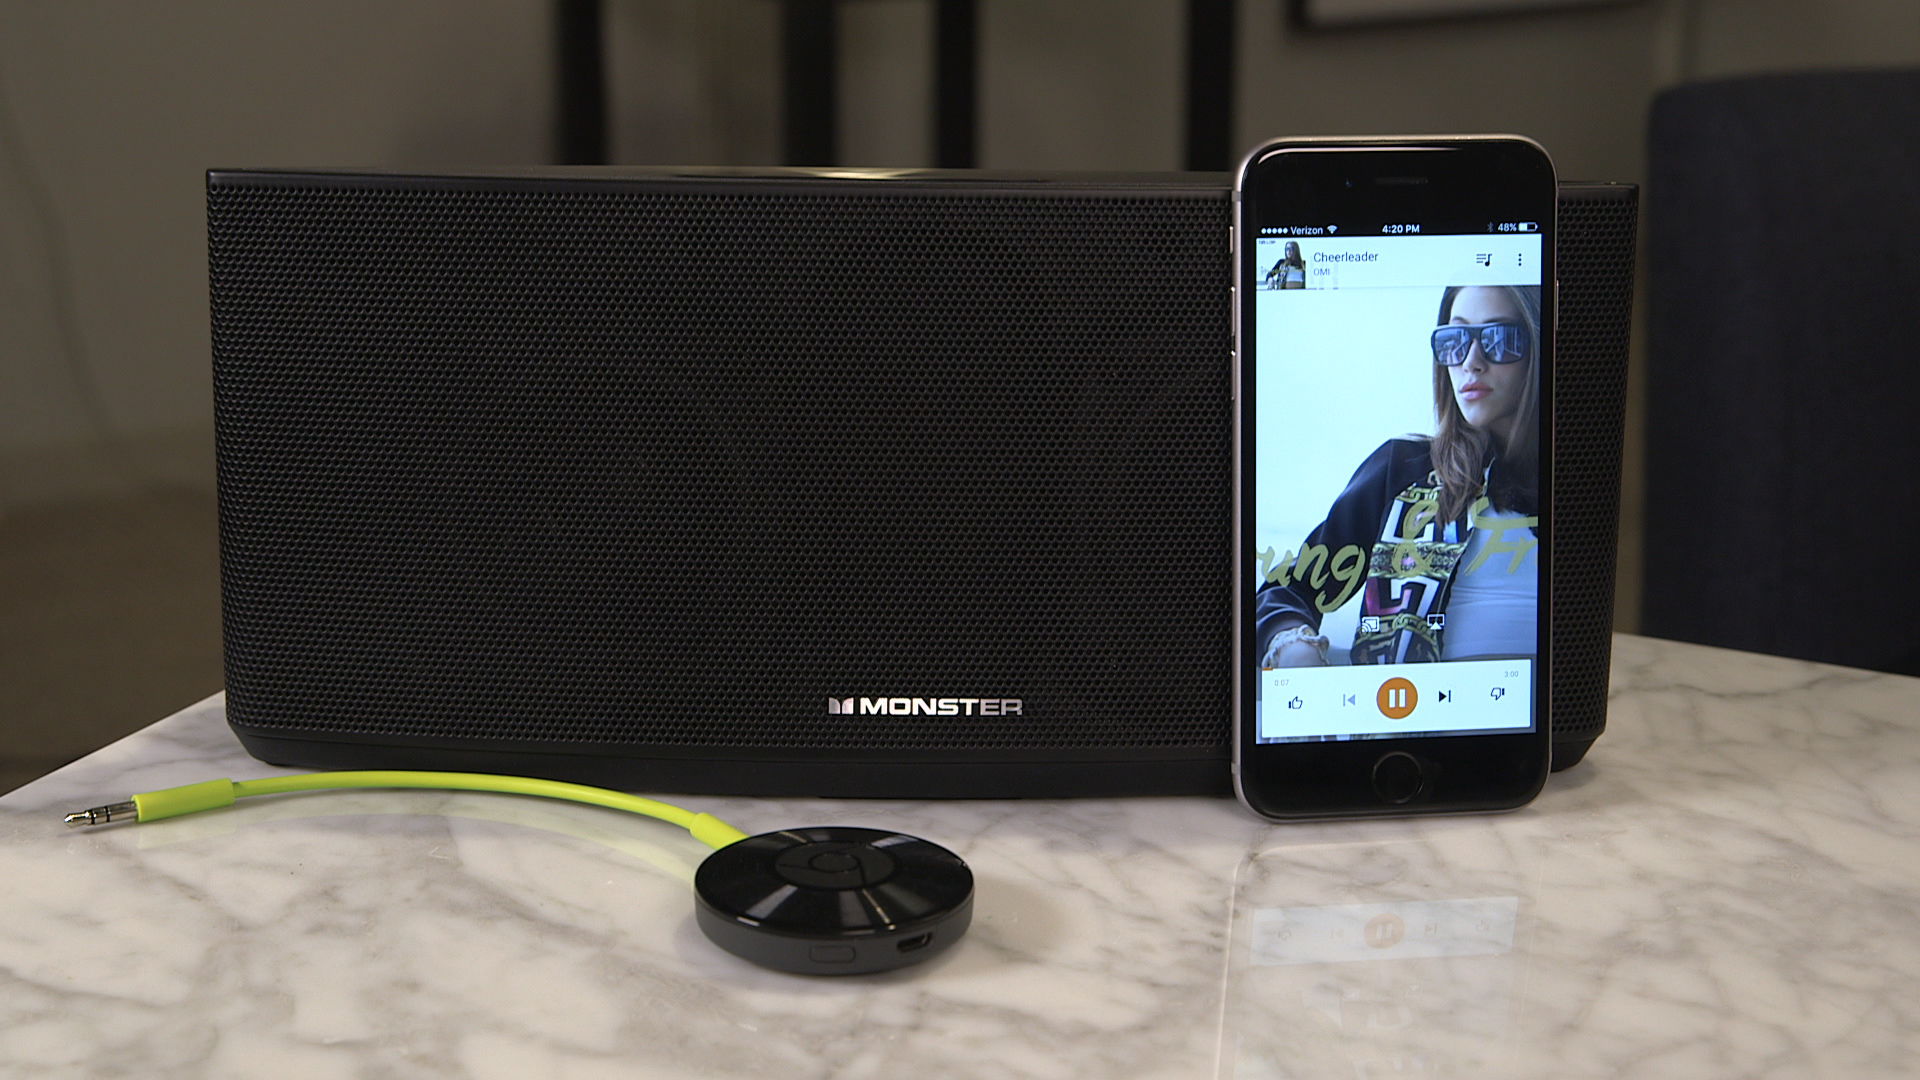 Video: How to set up Chromecast Audio